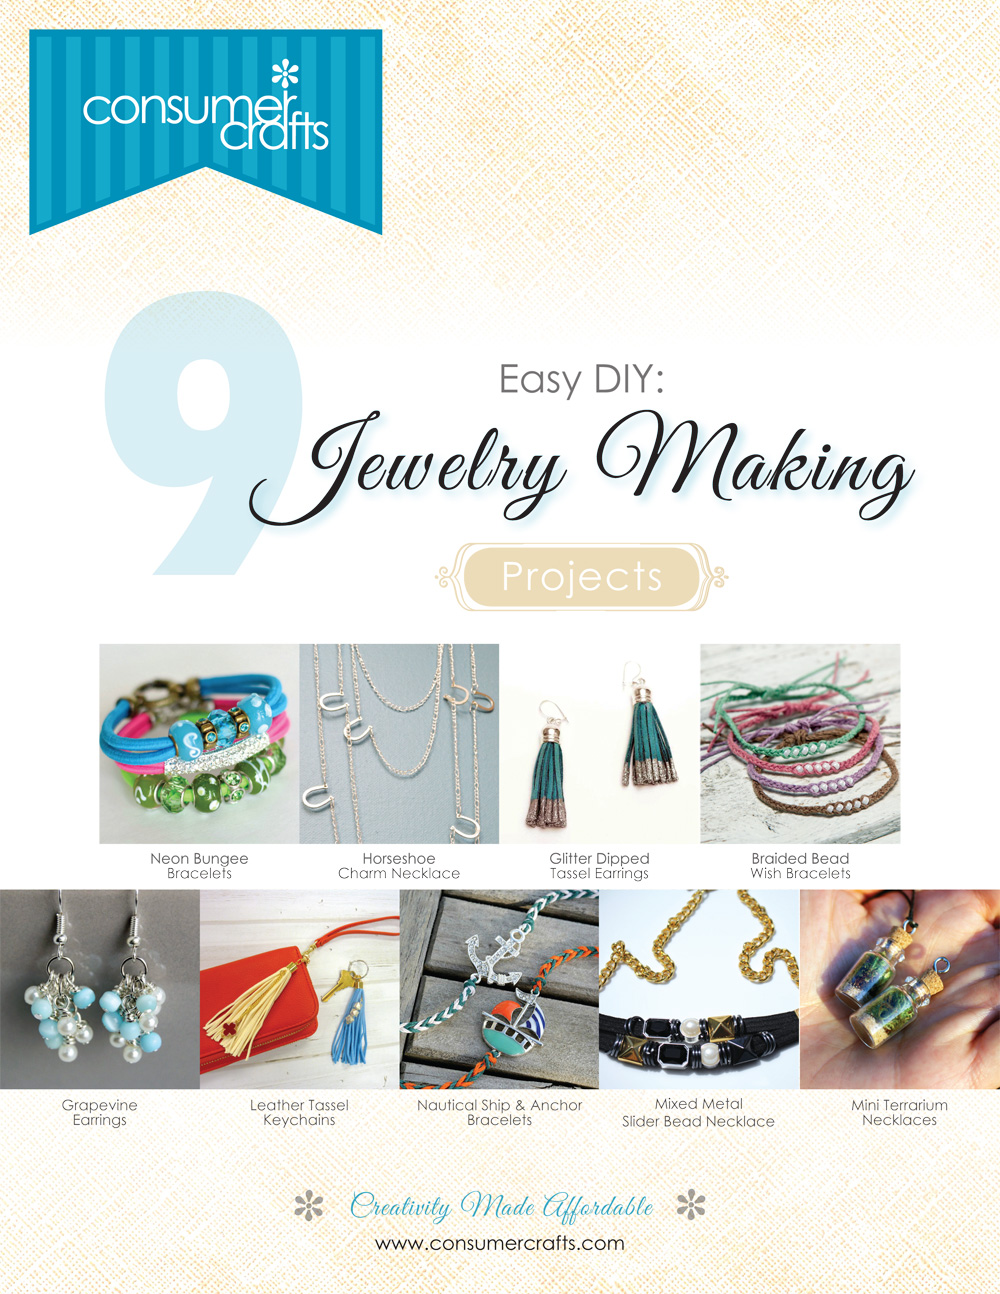 ConsumerCrafts $100 Shopping Spree Giveaway and FREE Jewelry eBook